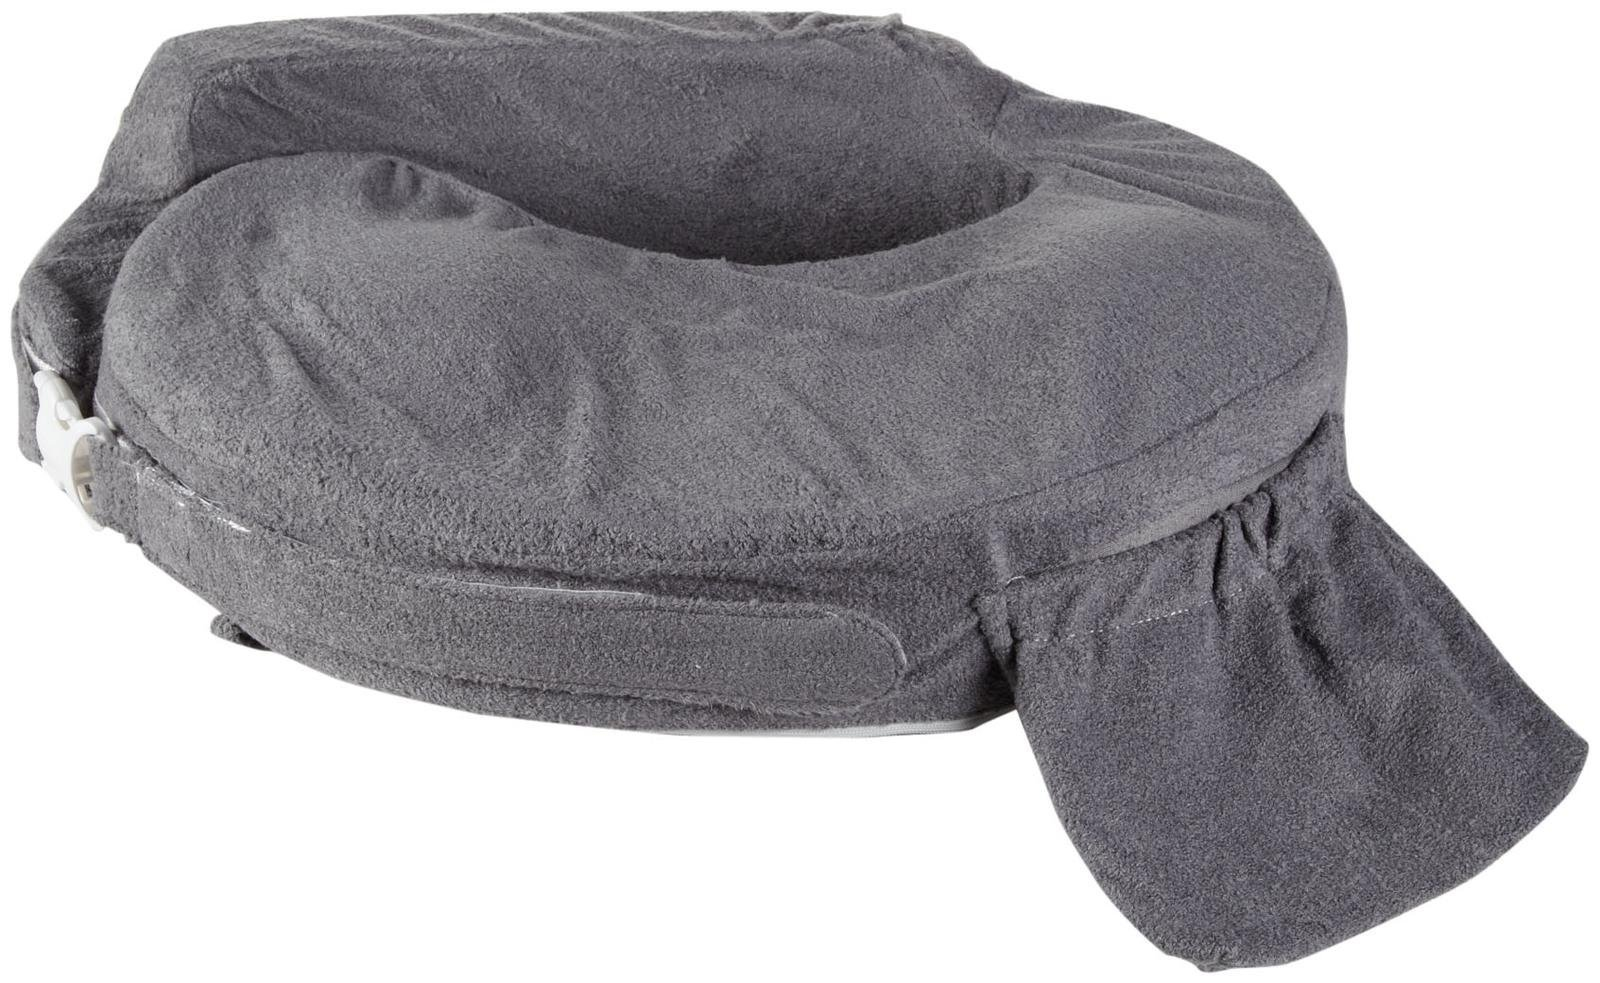 My Brest Friend Deluxe Nursing Pillow for Comfortable Posture, Evening Grey by My Brest Friend